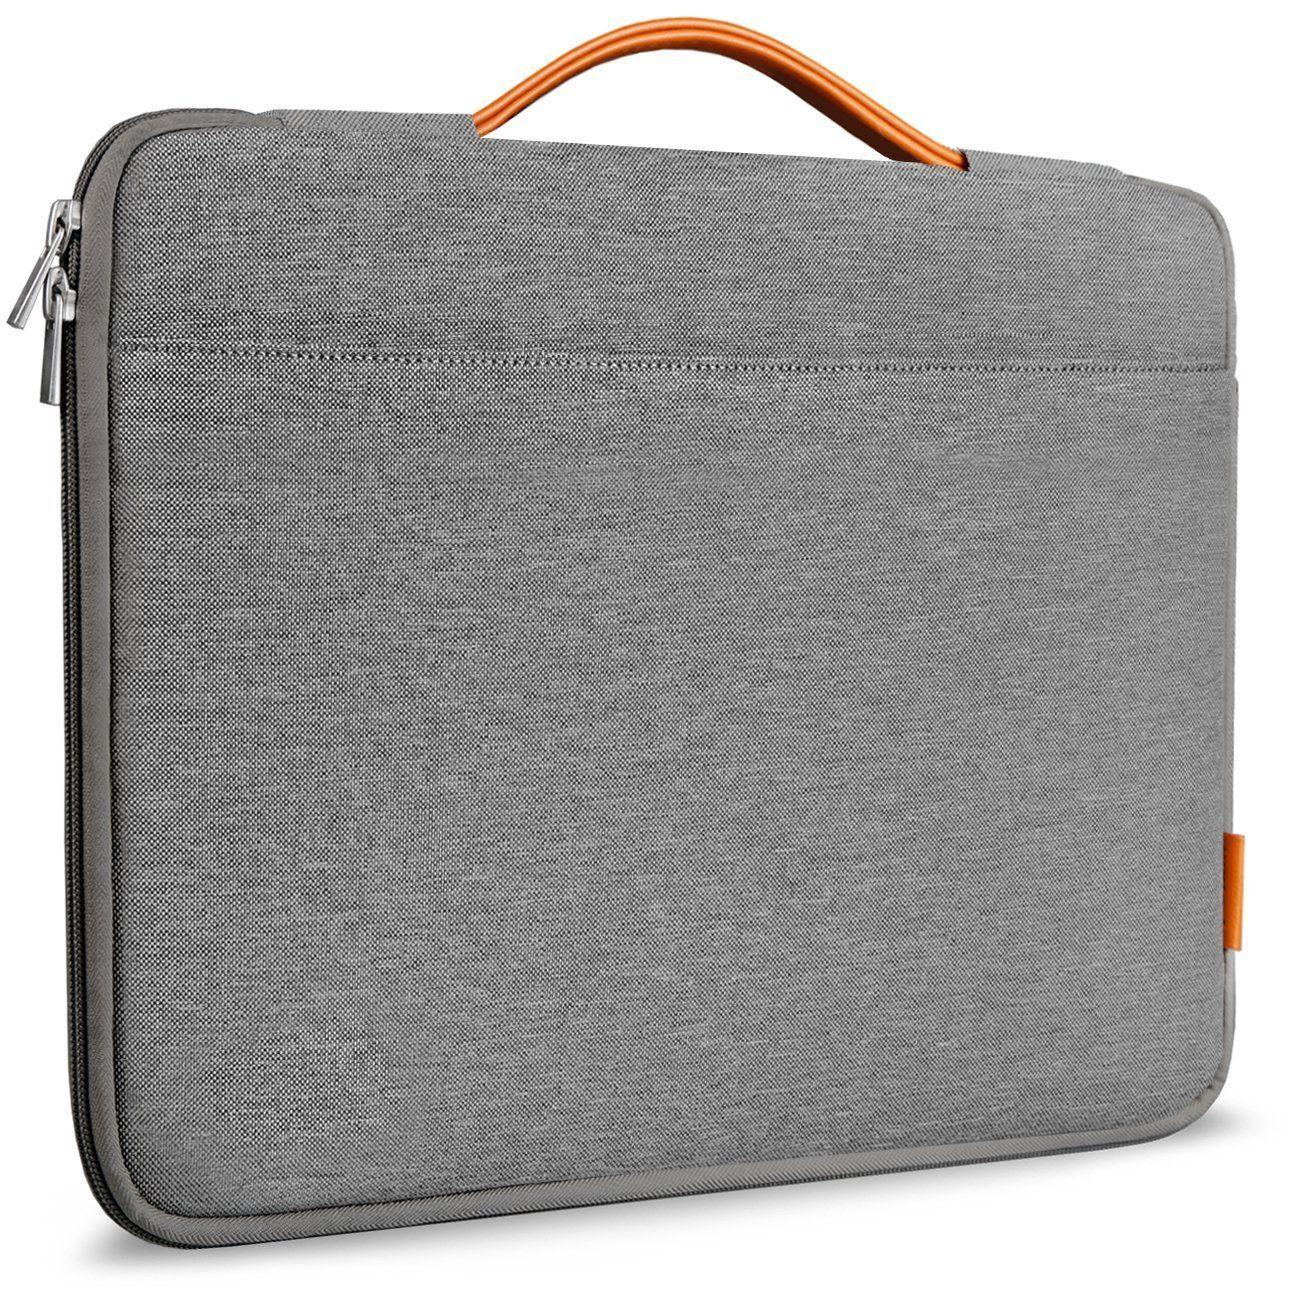 7 useful accessories for your MacBook Pro